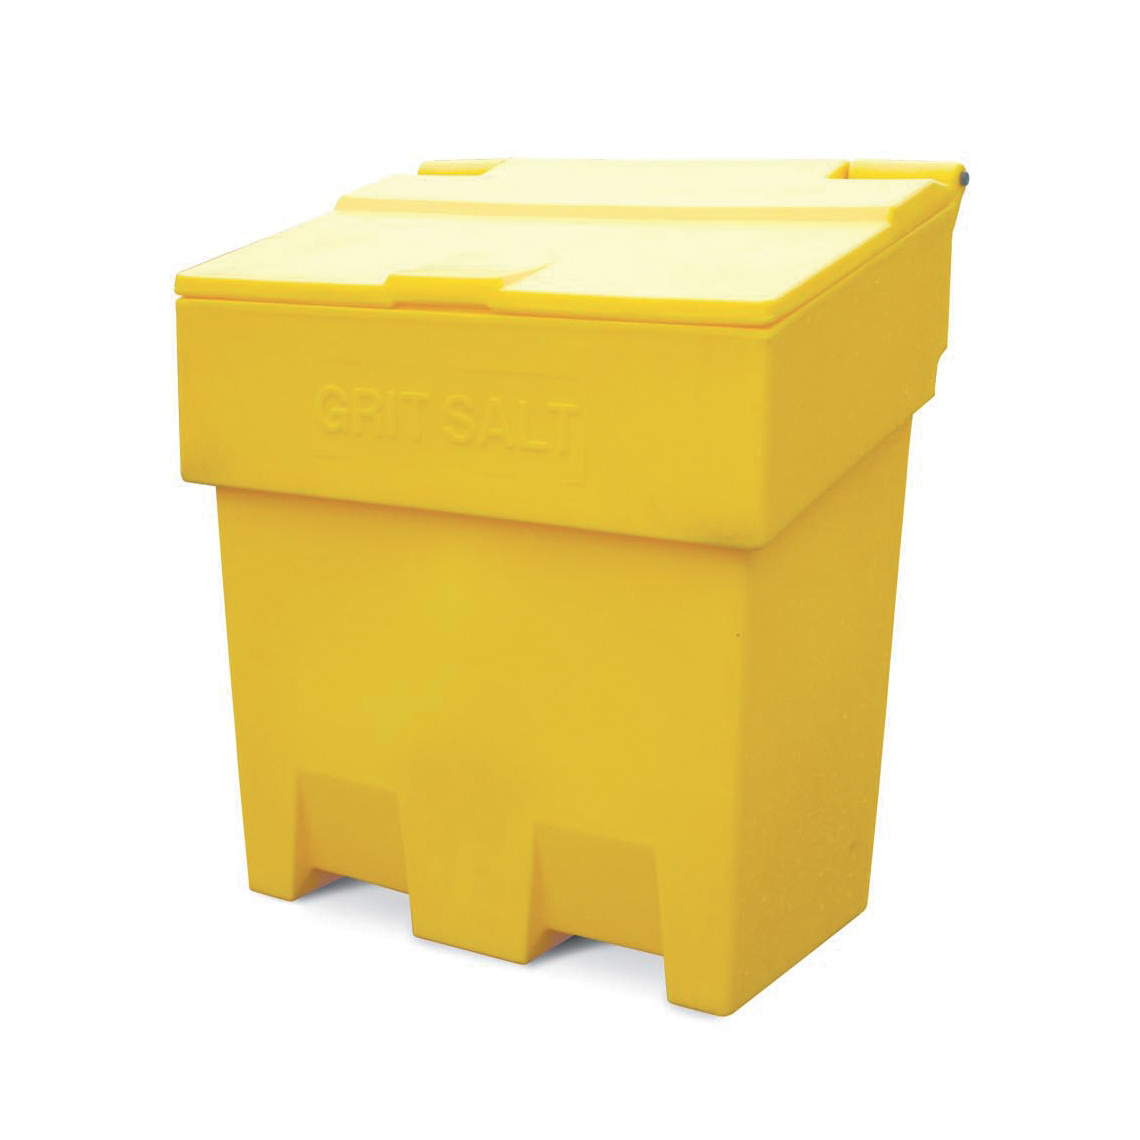 De-Icing Supplies Bentley Grit and Salt Bin Polyethylene Capacity 240kg Weight 14kg Ref SPC/GRIT200